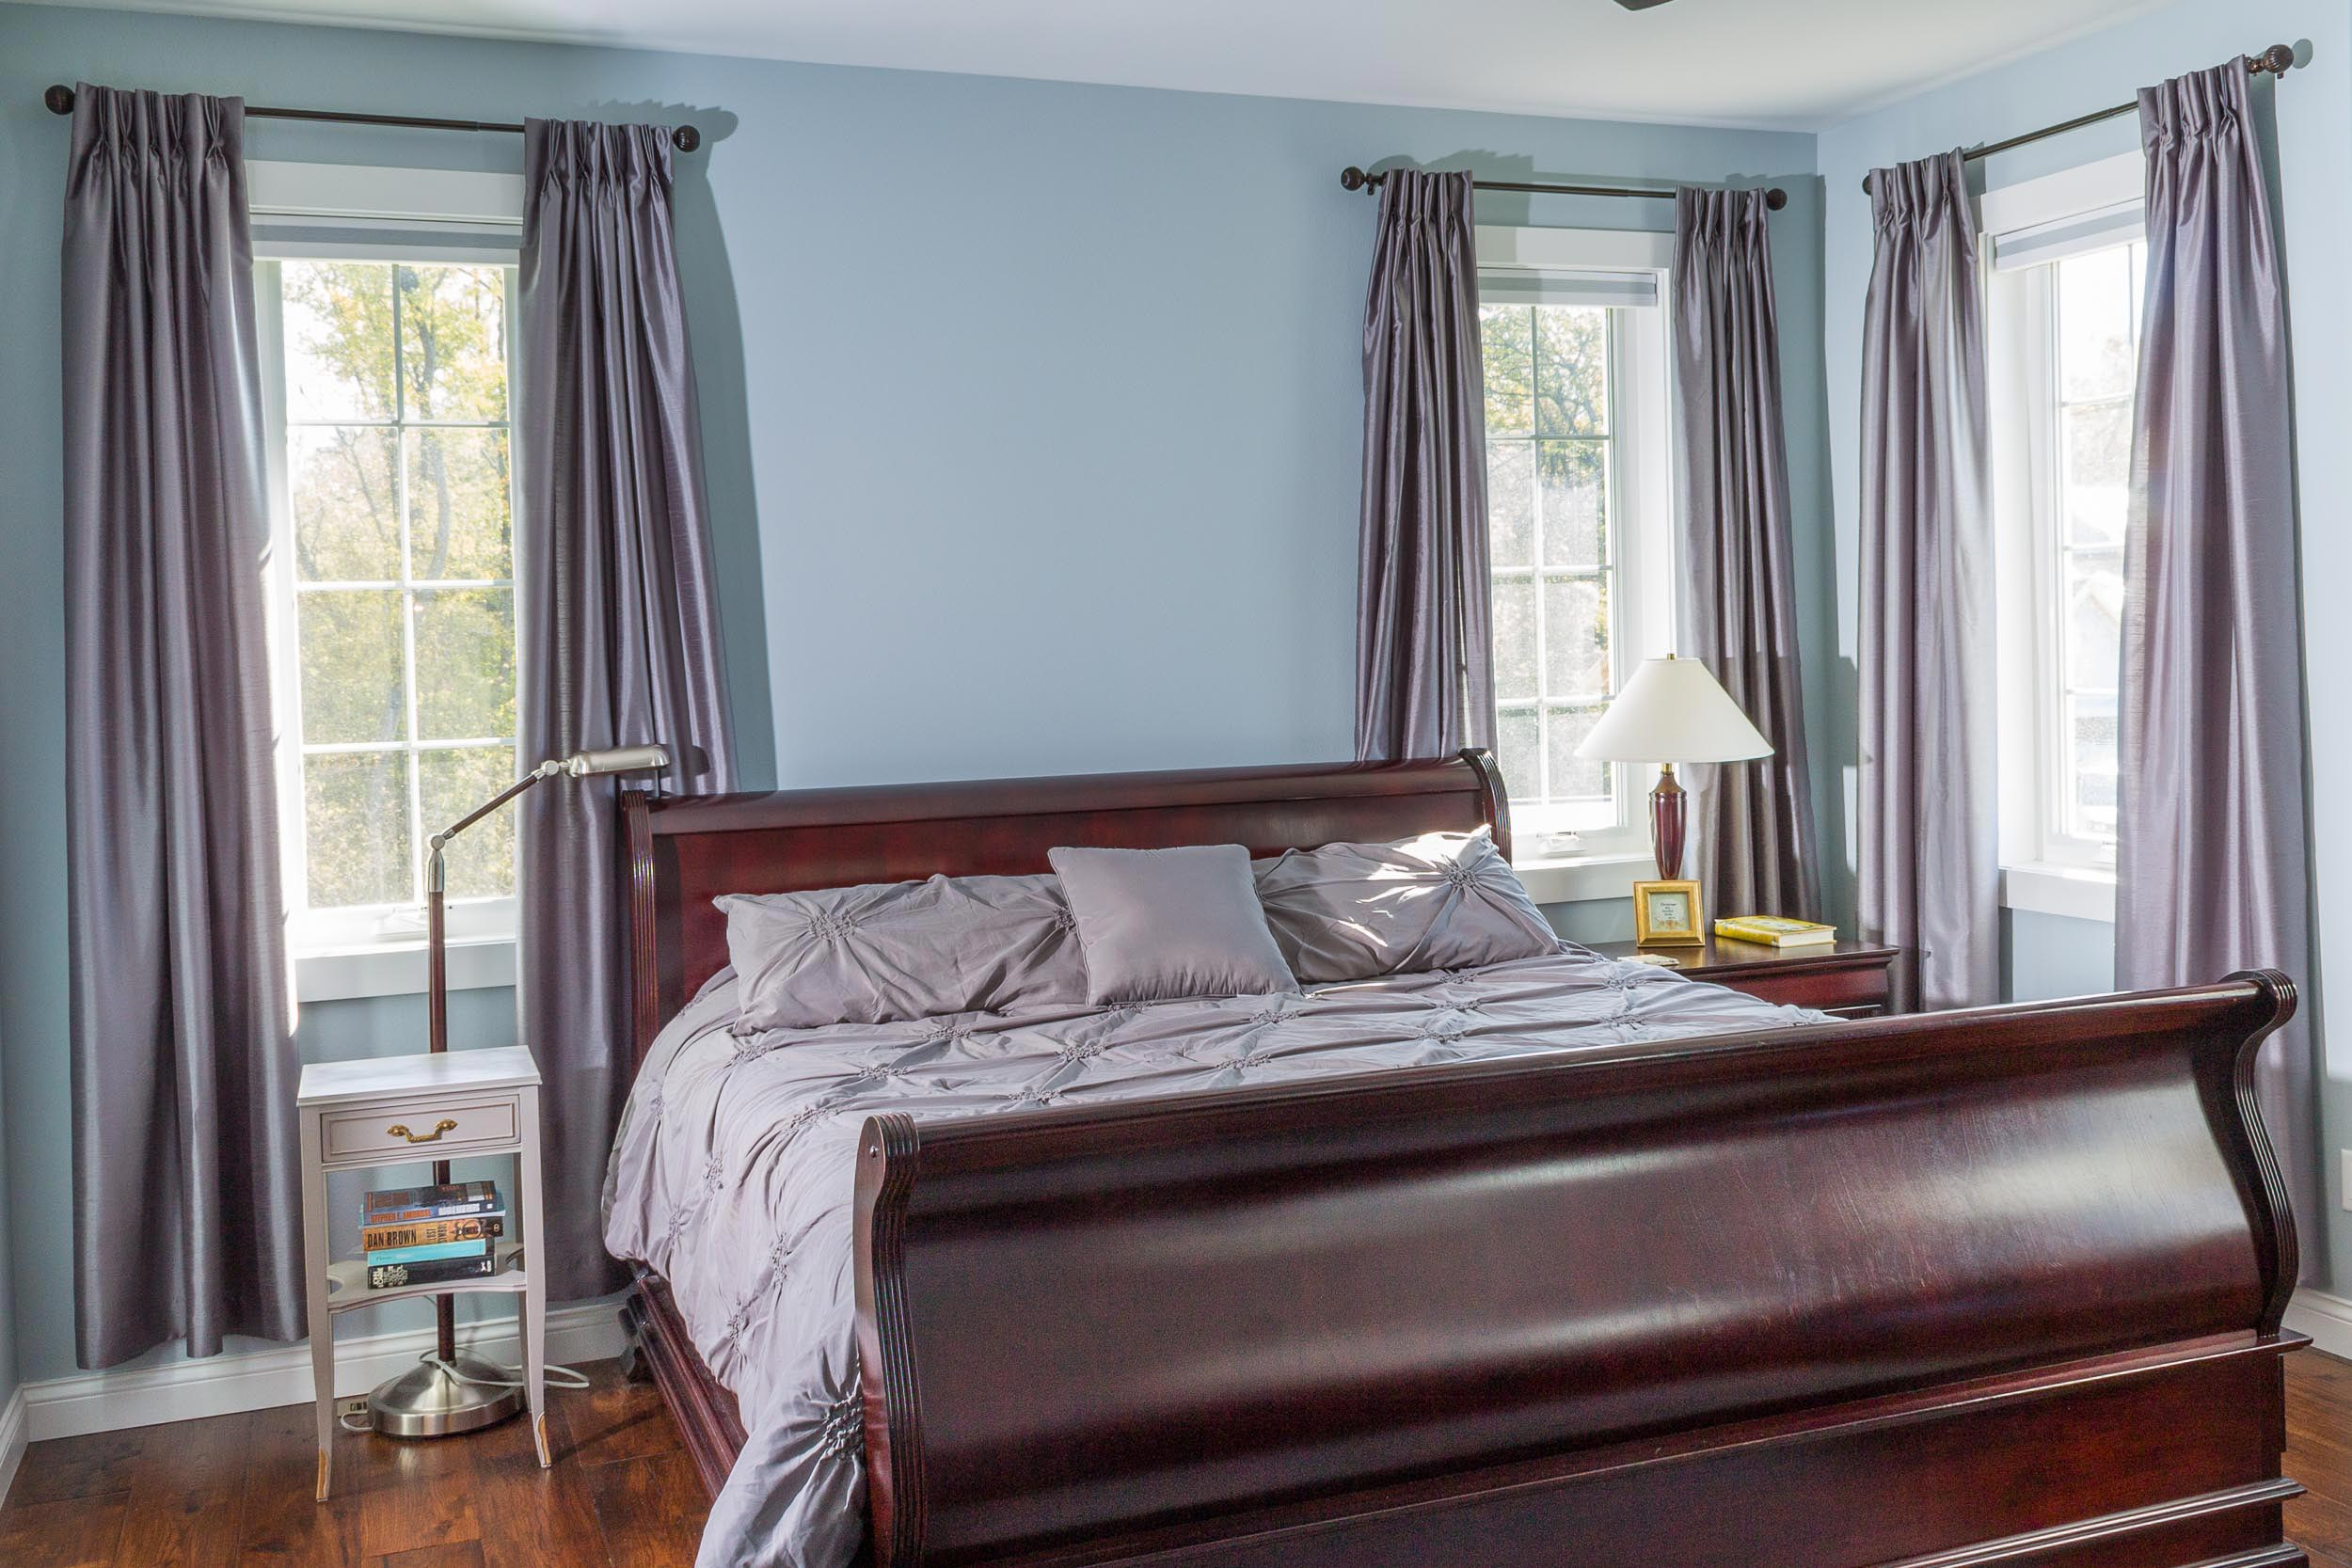 Master Bedroom Design with Sleigh Bed and View of Yard Beyond